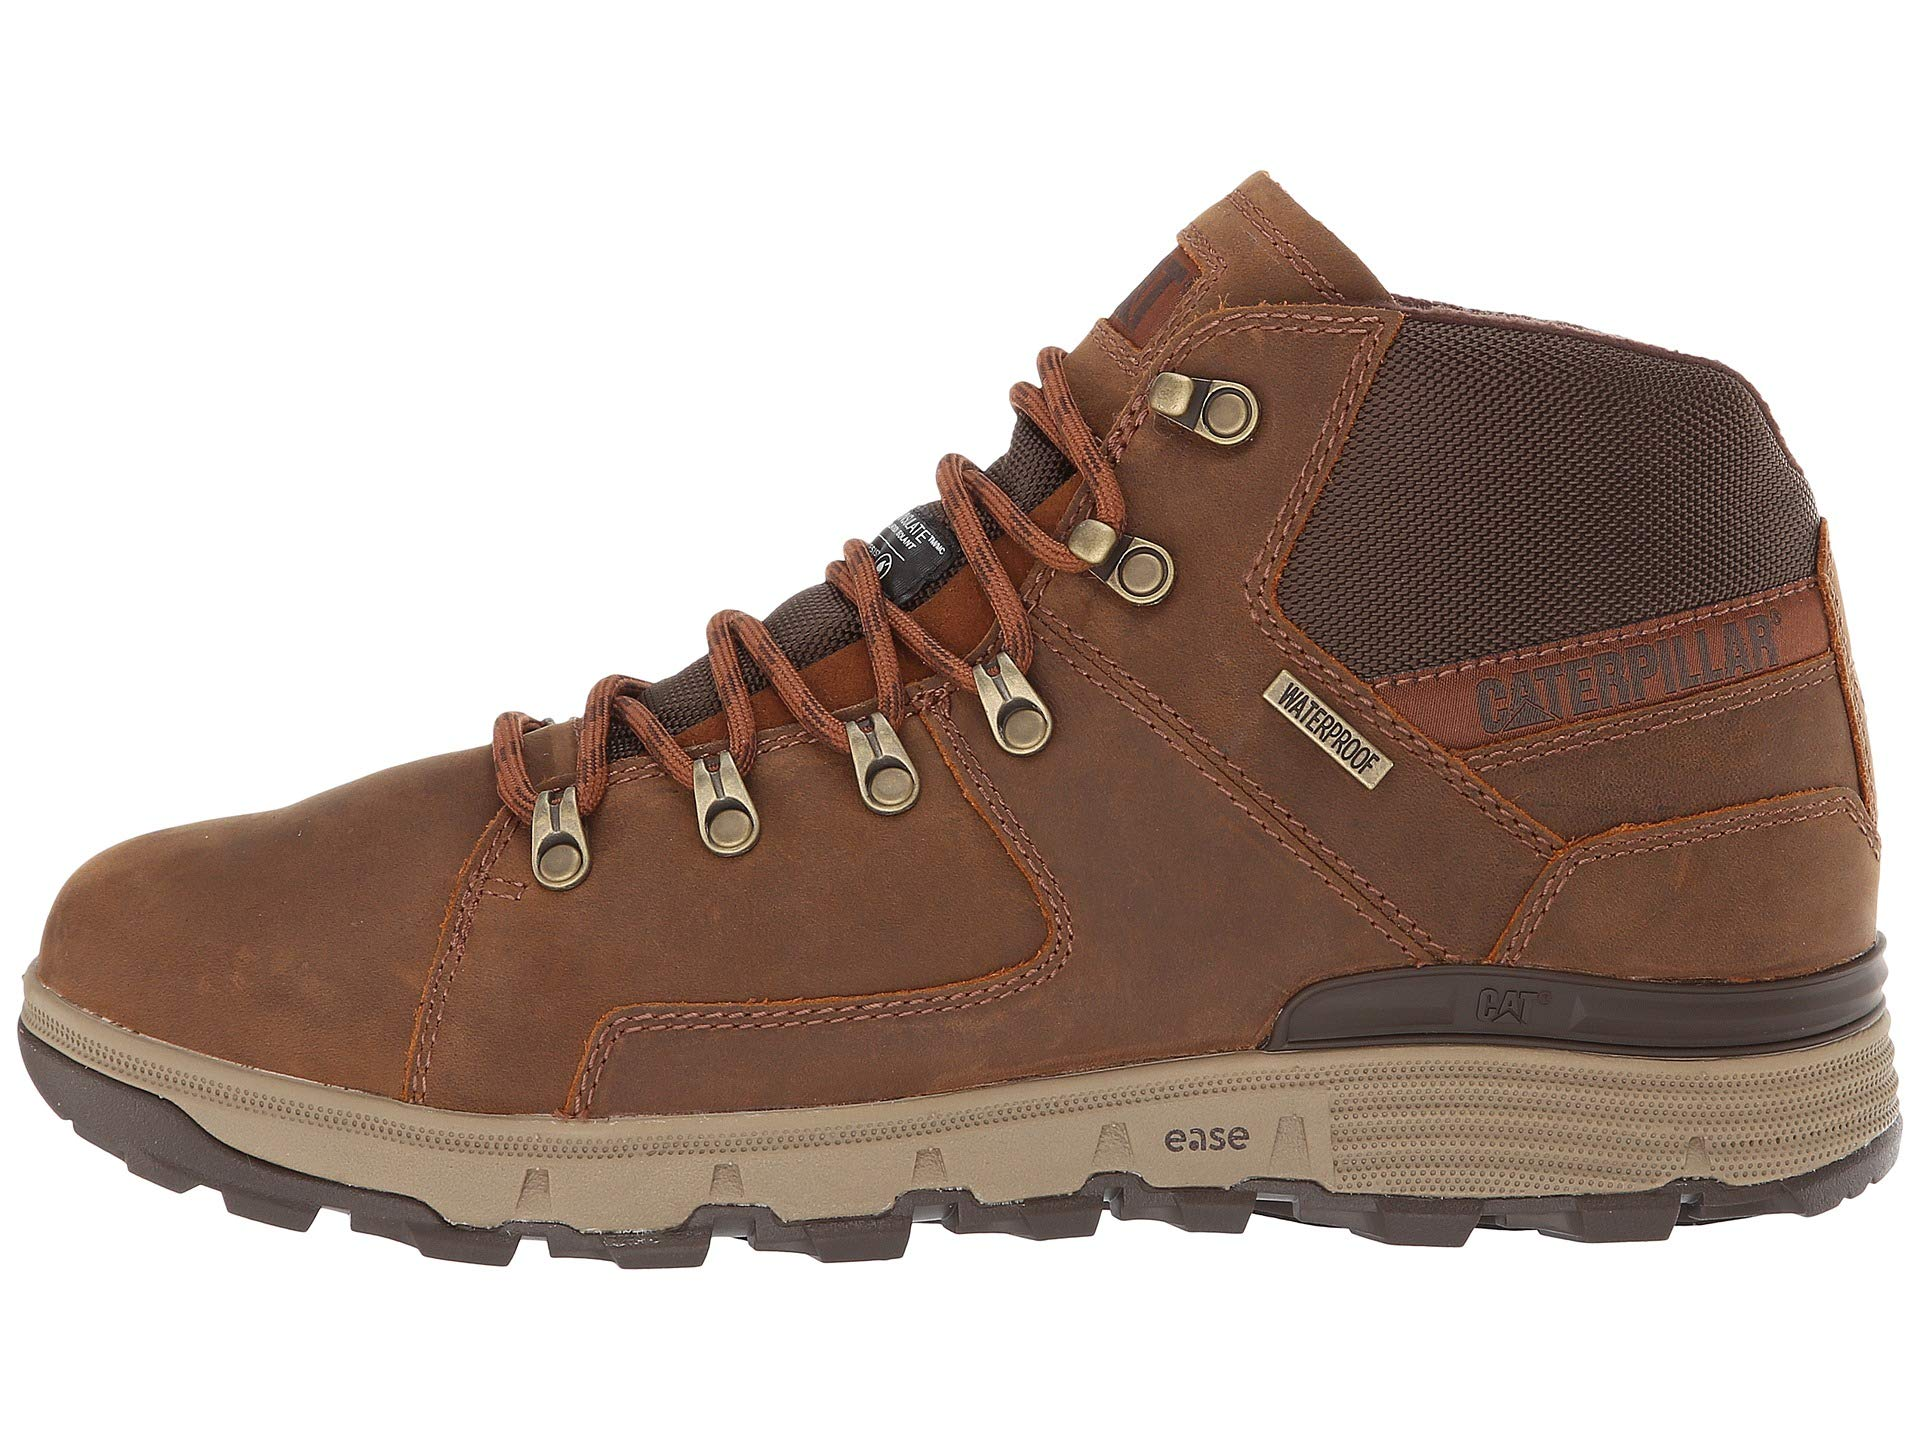 Stiction Hiker Brown Tx Caterpillar Waterproof Ice Casual Sugar AfxSwq1